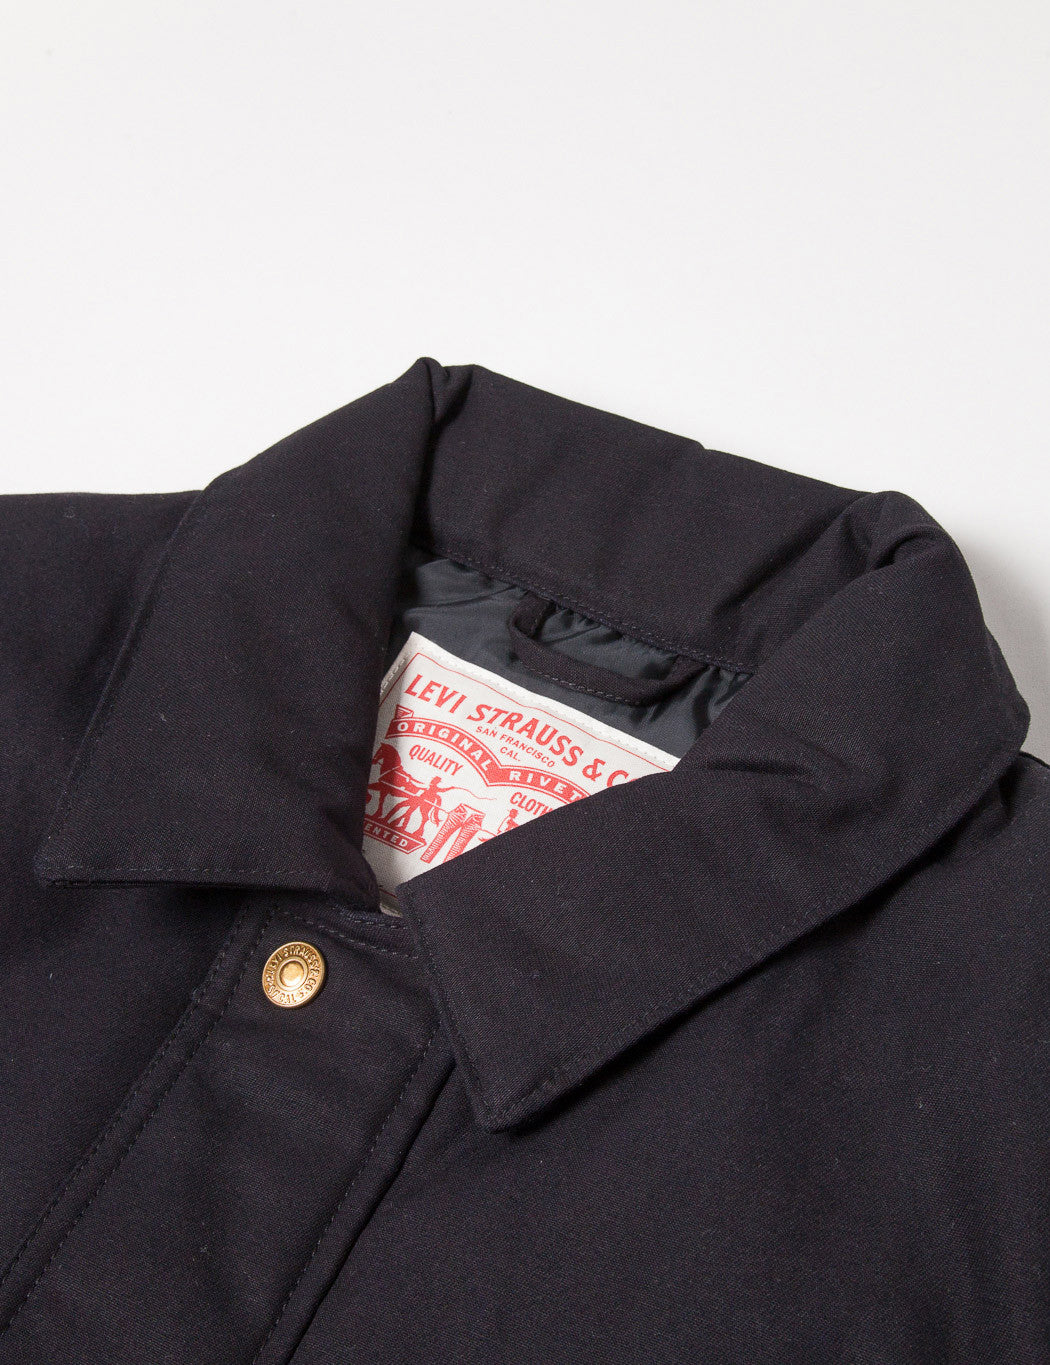 Levis Insulated Utility Jacket - Black